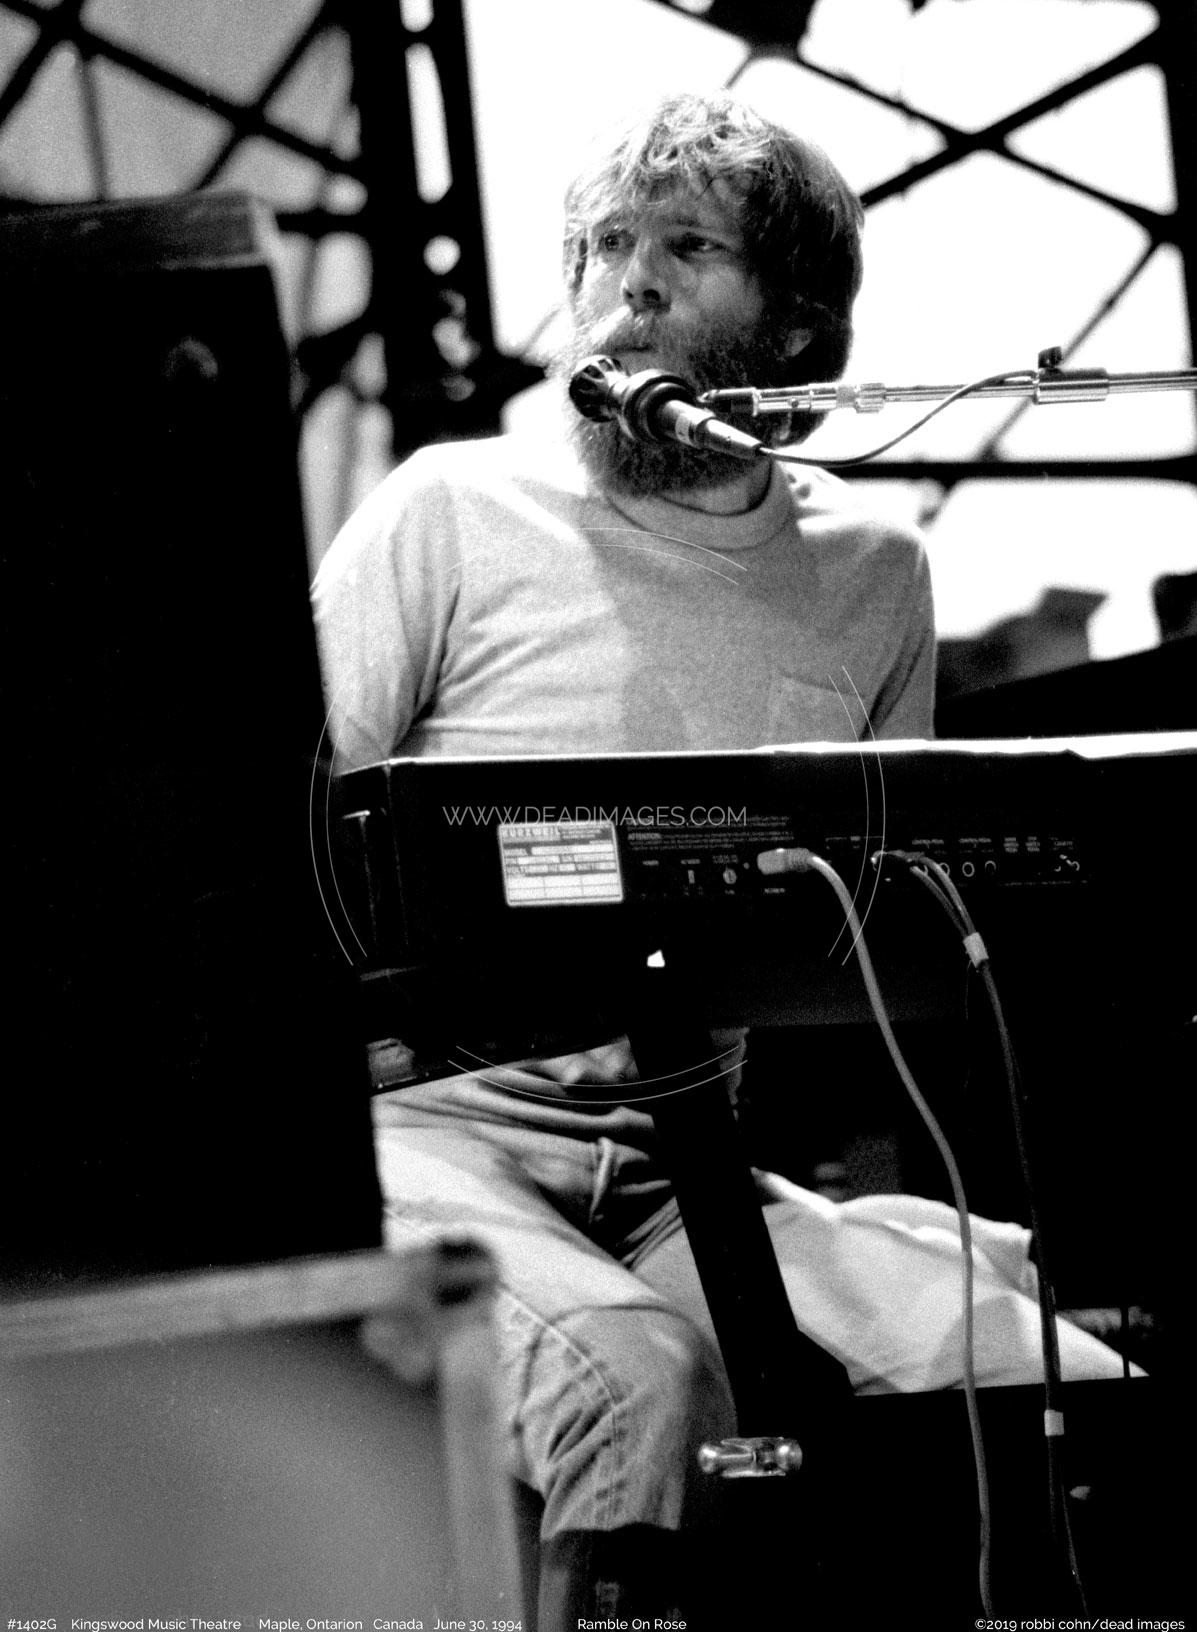 Brent Mydland - June 30, 1987 - Maple Ontario Canada, | Dead